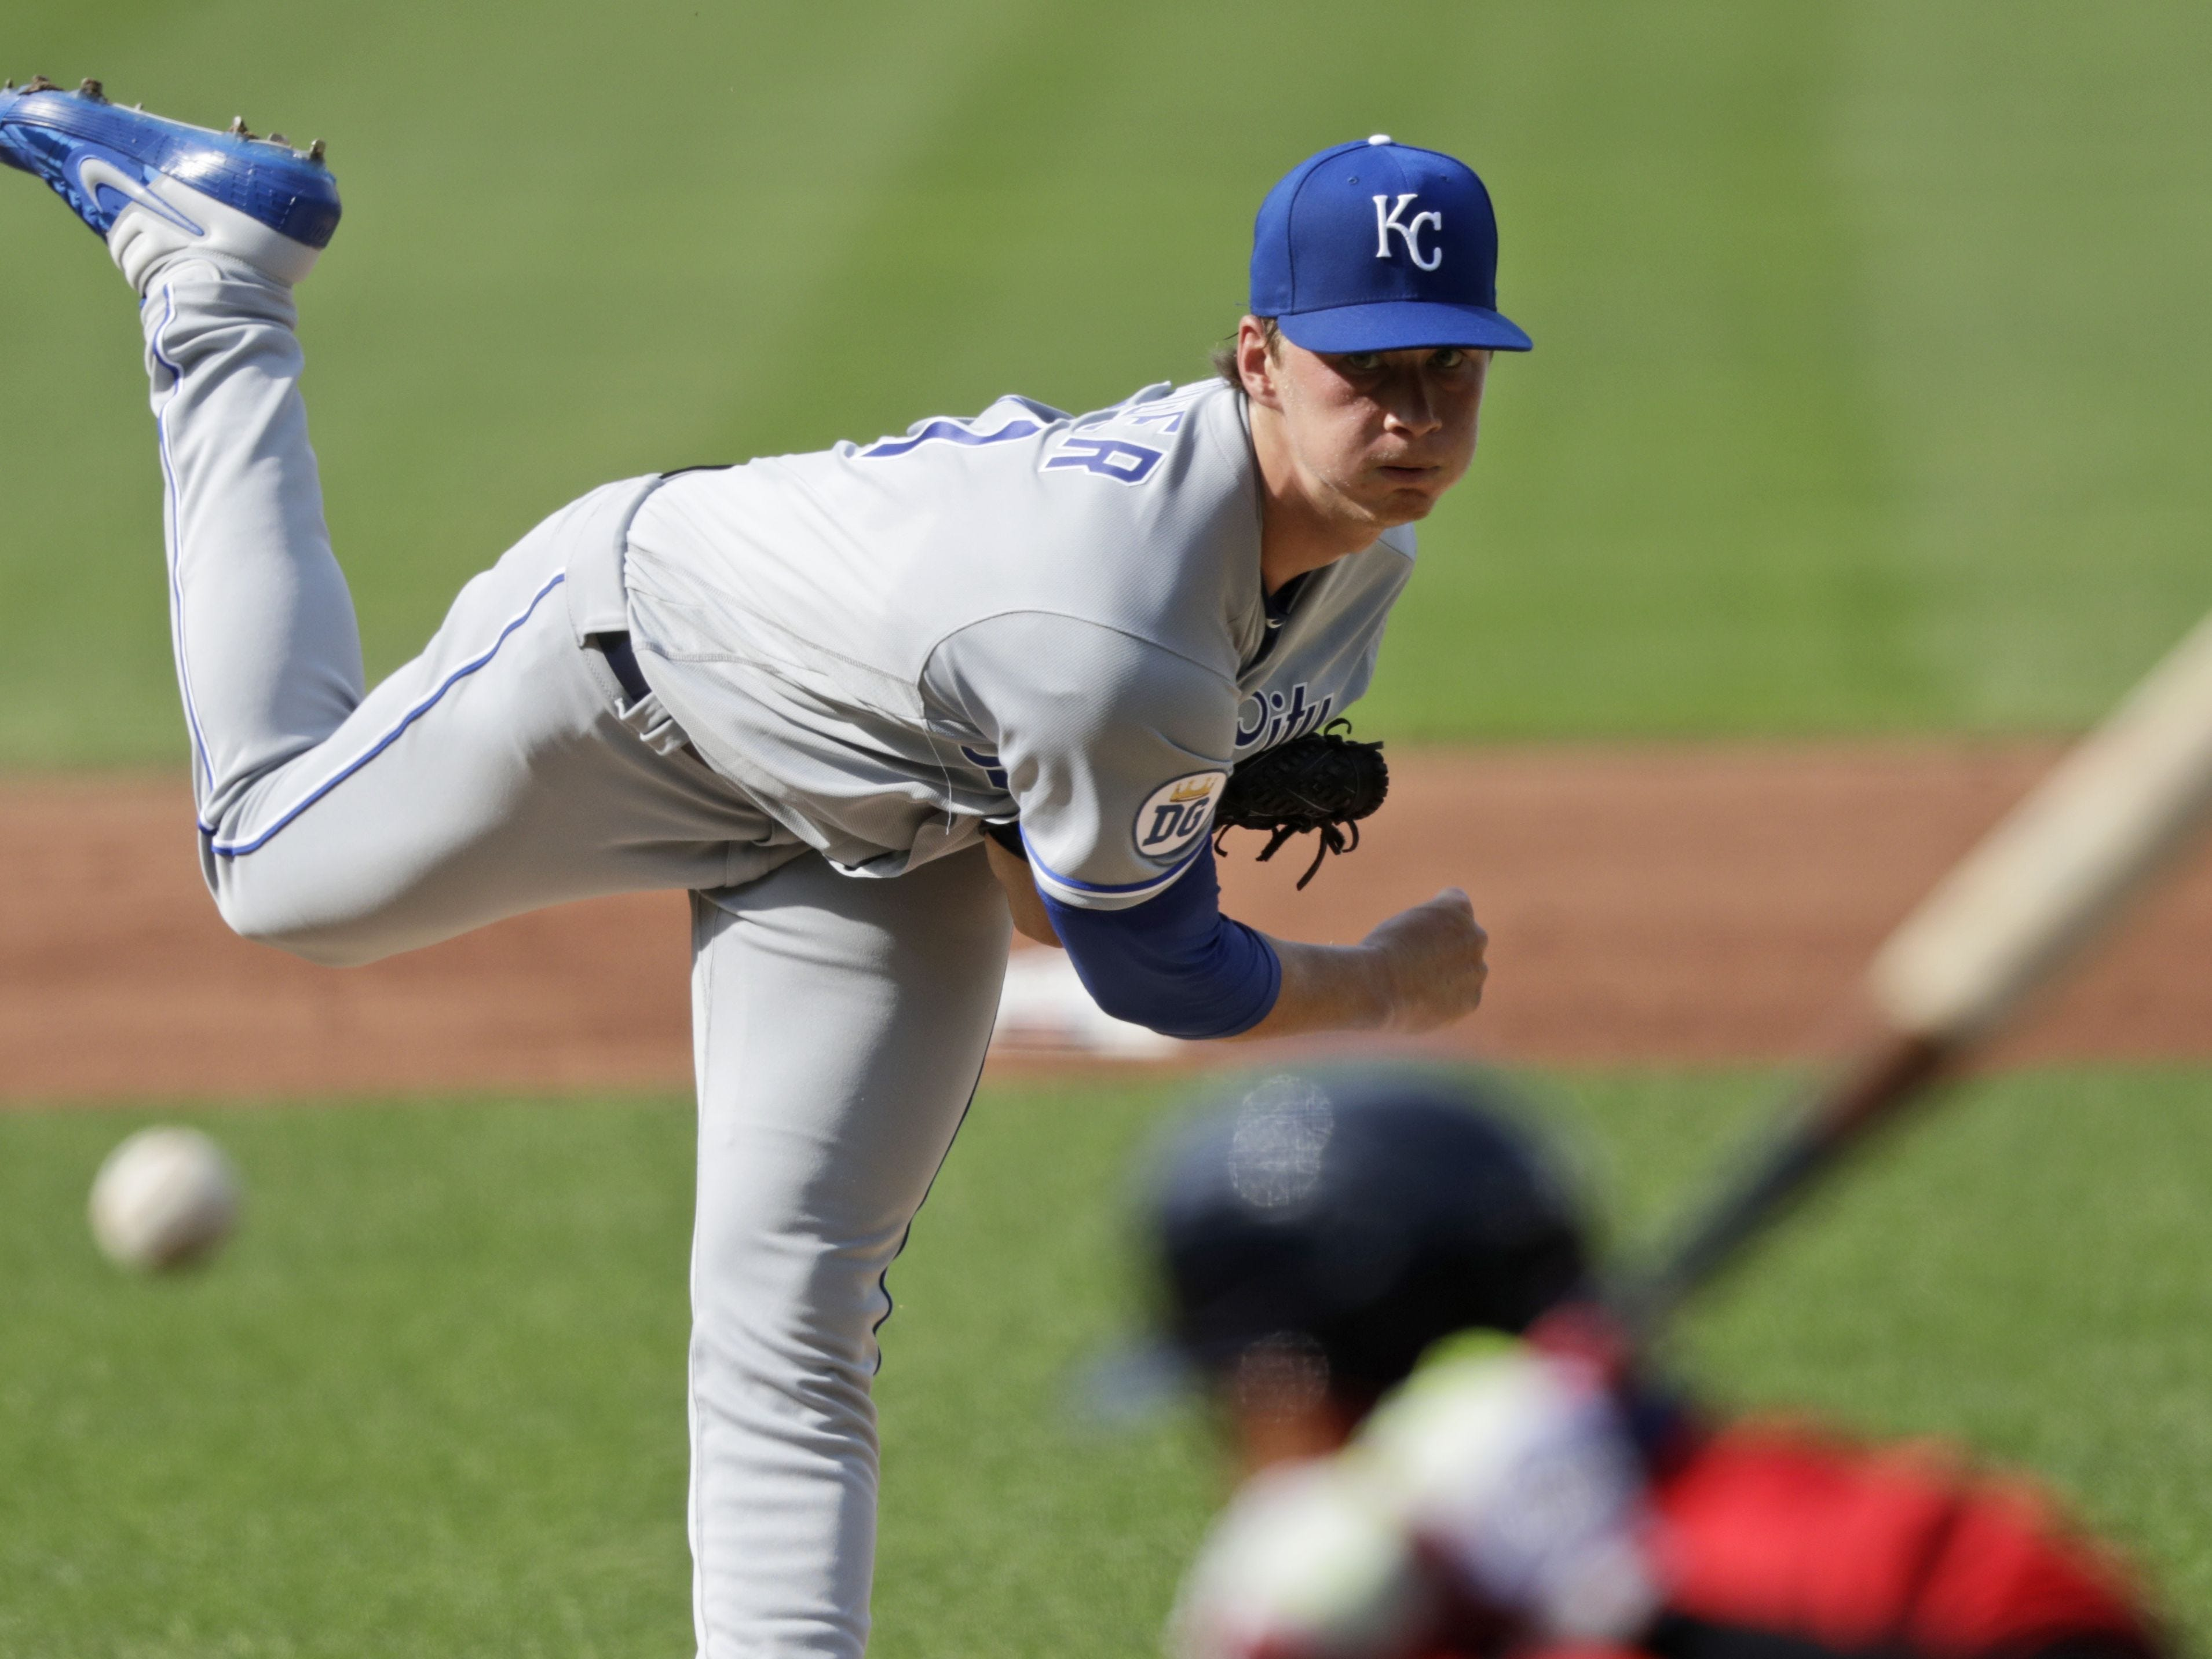 Kansas City Royals starting pitcher Brady Singer delivers to Cleveland Indians' Cesar Hernandez in the first inning in a baseball game Saturday, July 25, 2020, in Cleveland. (AP Photo/Tony Dejak)